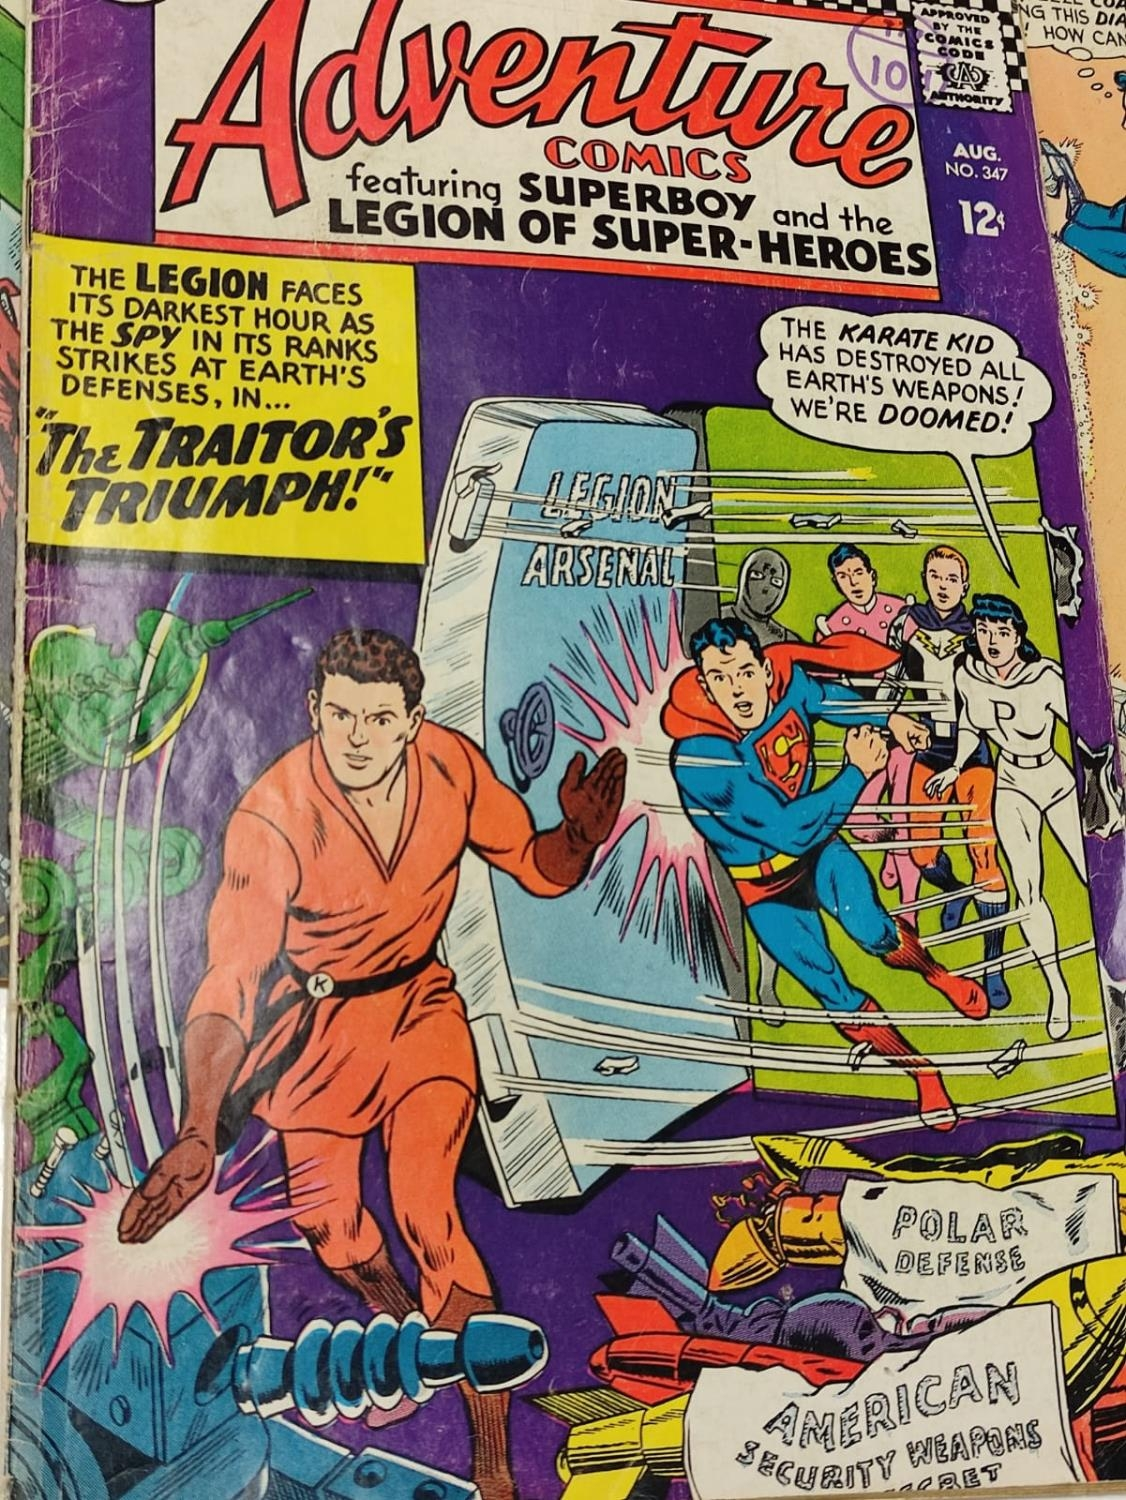 5 editions of DC Adventure Comics featuring Super-boy. - Image 5 of 19